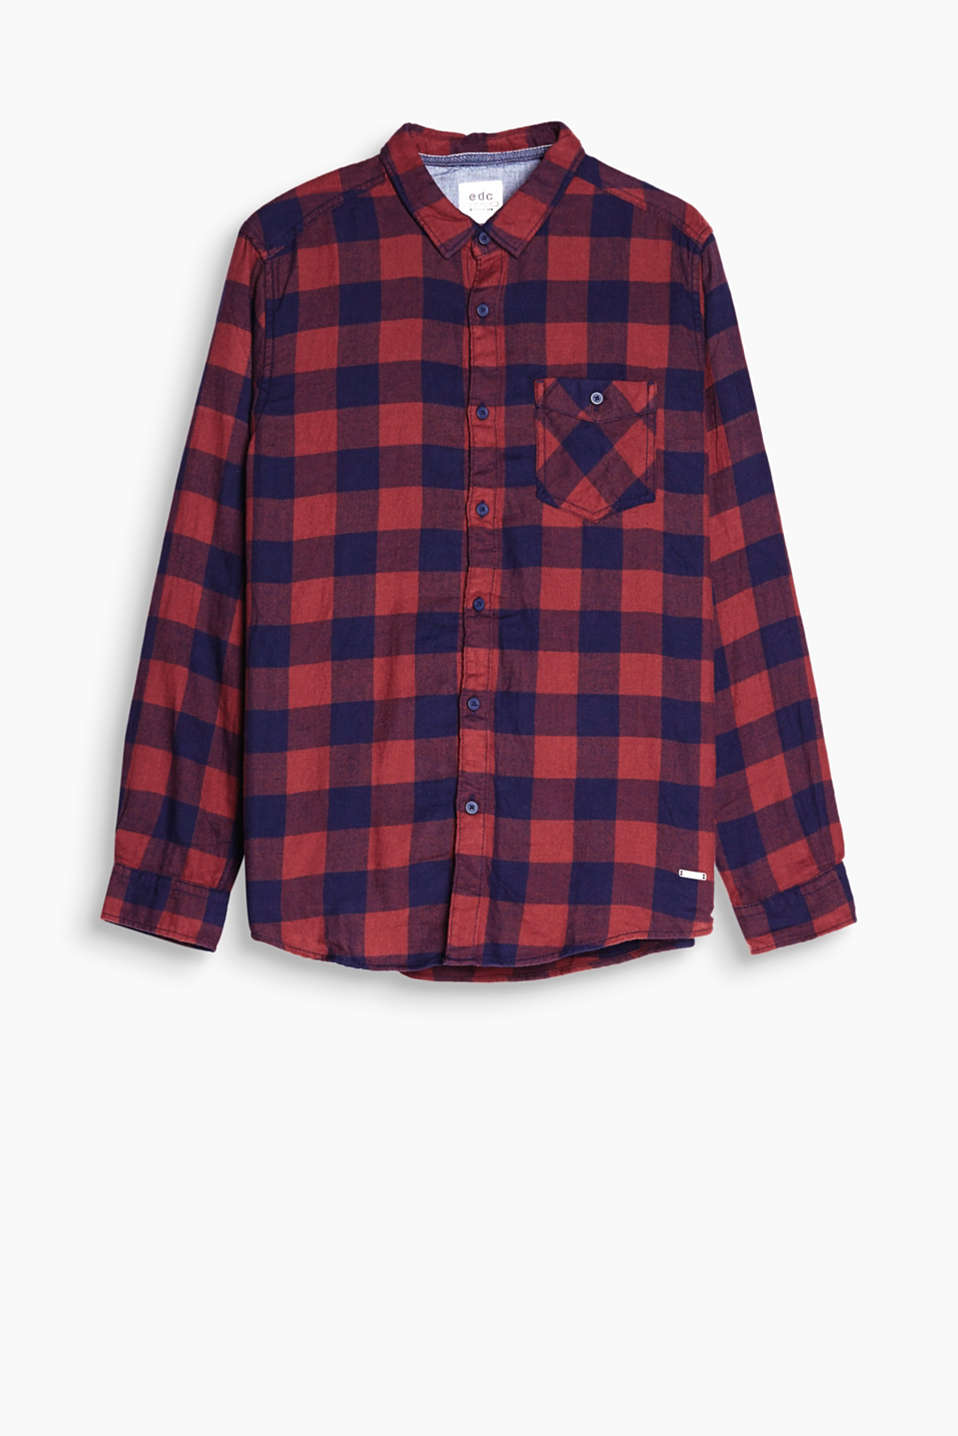 The Glencheck pattern makes this shirt perfect for country and grunge looks.